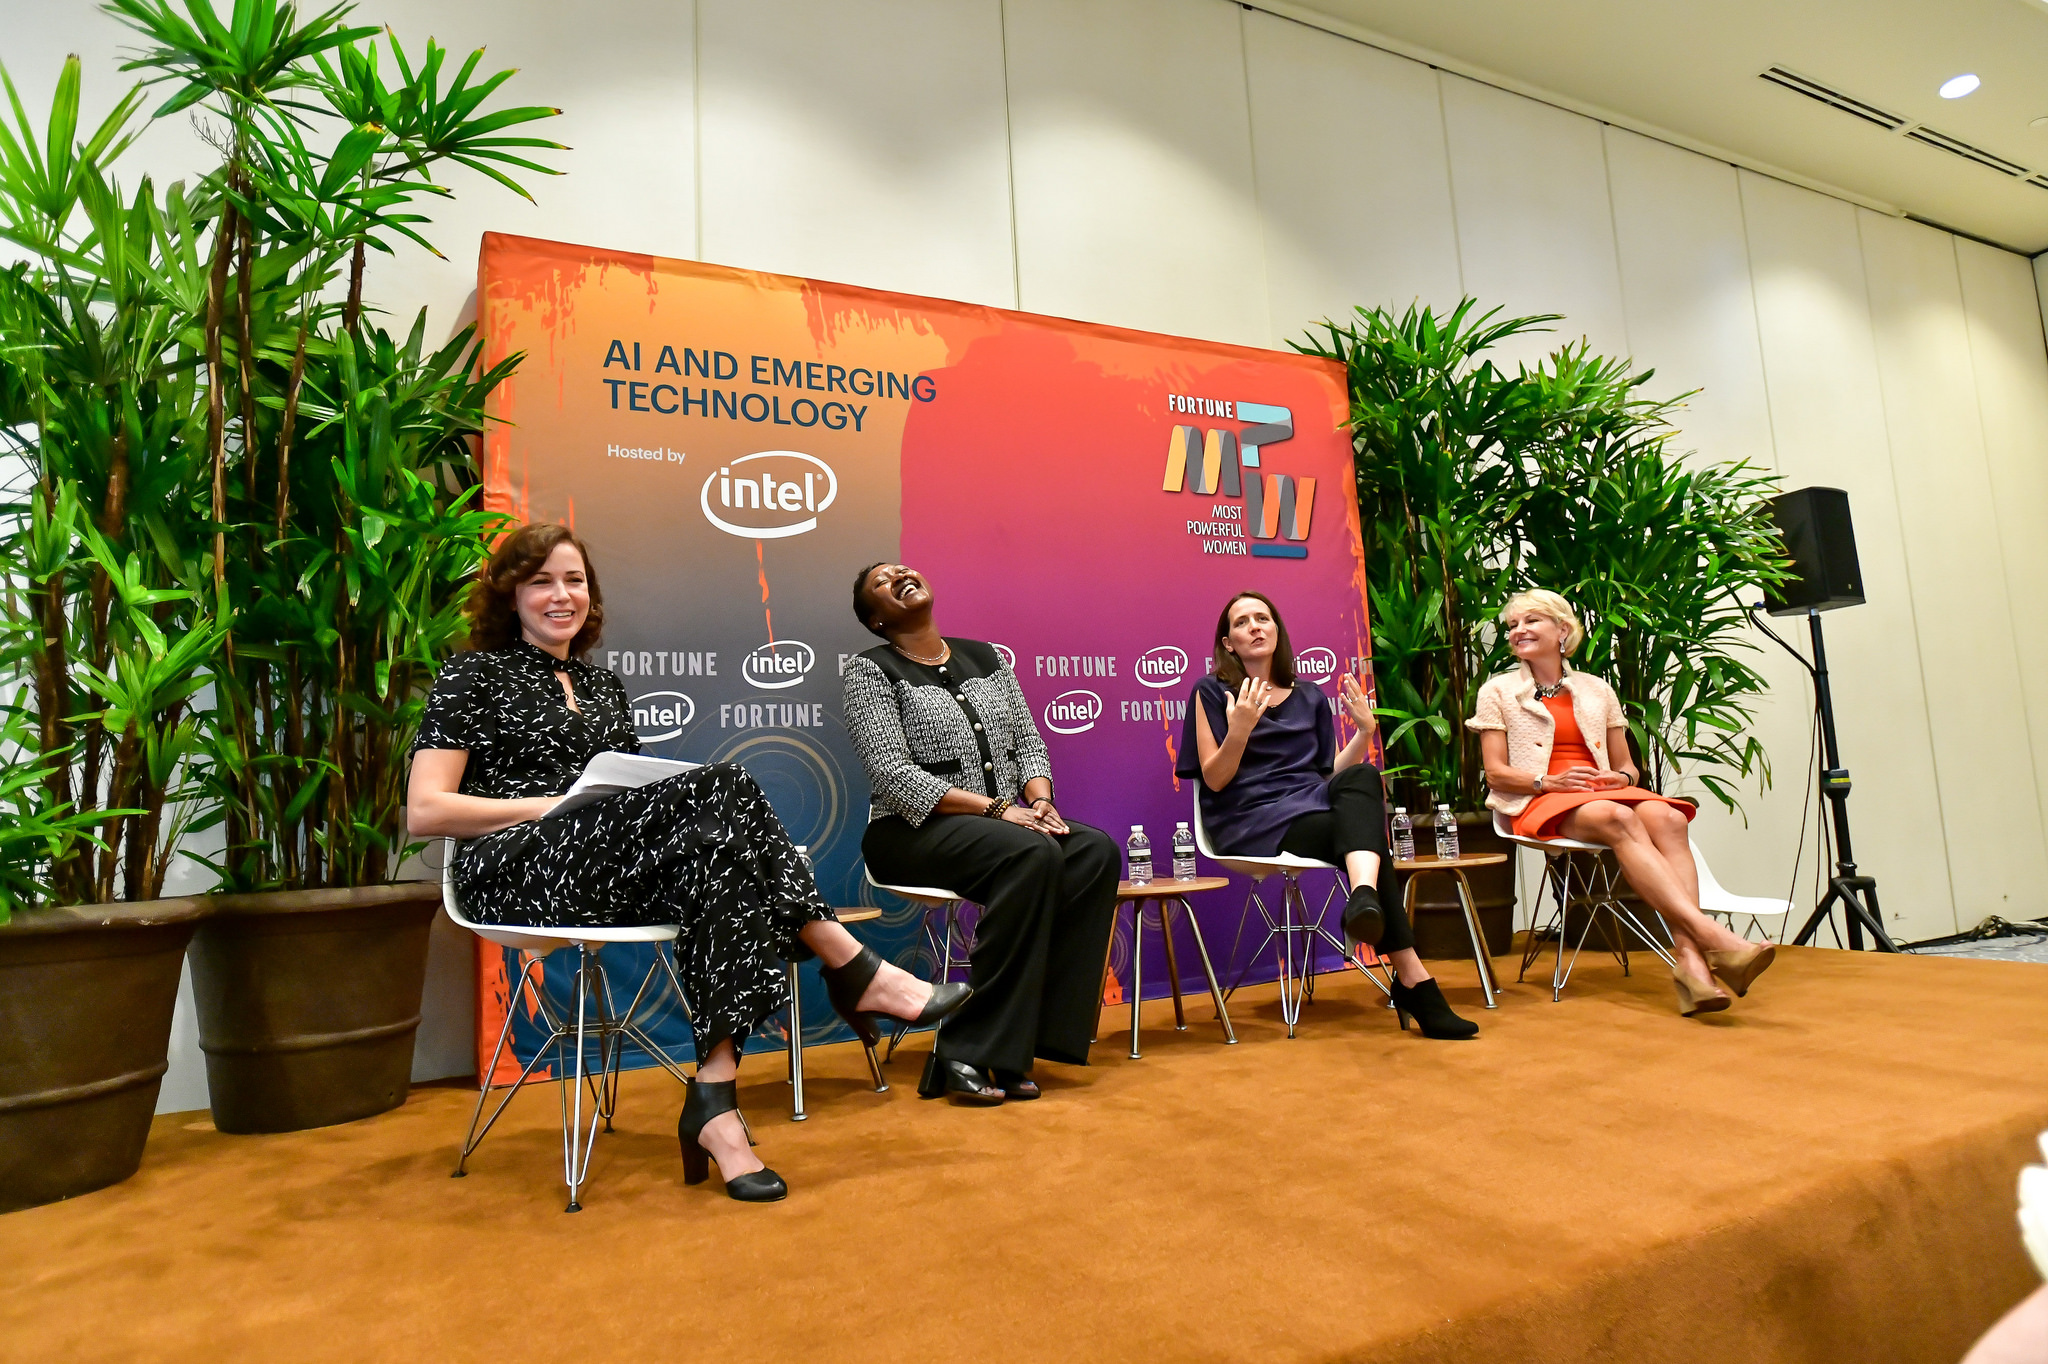 Michal Lev-Ram of Fortune, Aicha Evans of Intel, Toni Reid of Amazon, and Bridget van Kralingen of IBM at the 2018 Fortune Most Powerful Women Summit in Laguna Niguel, Calif.